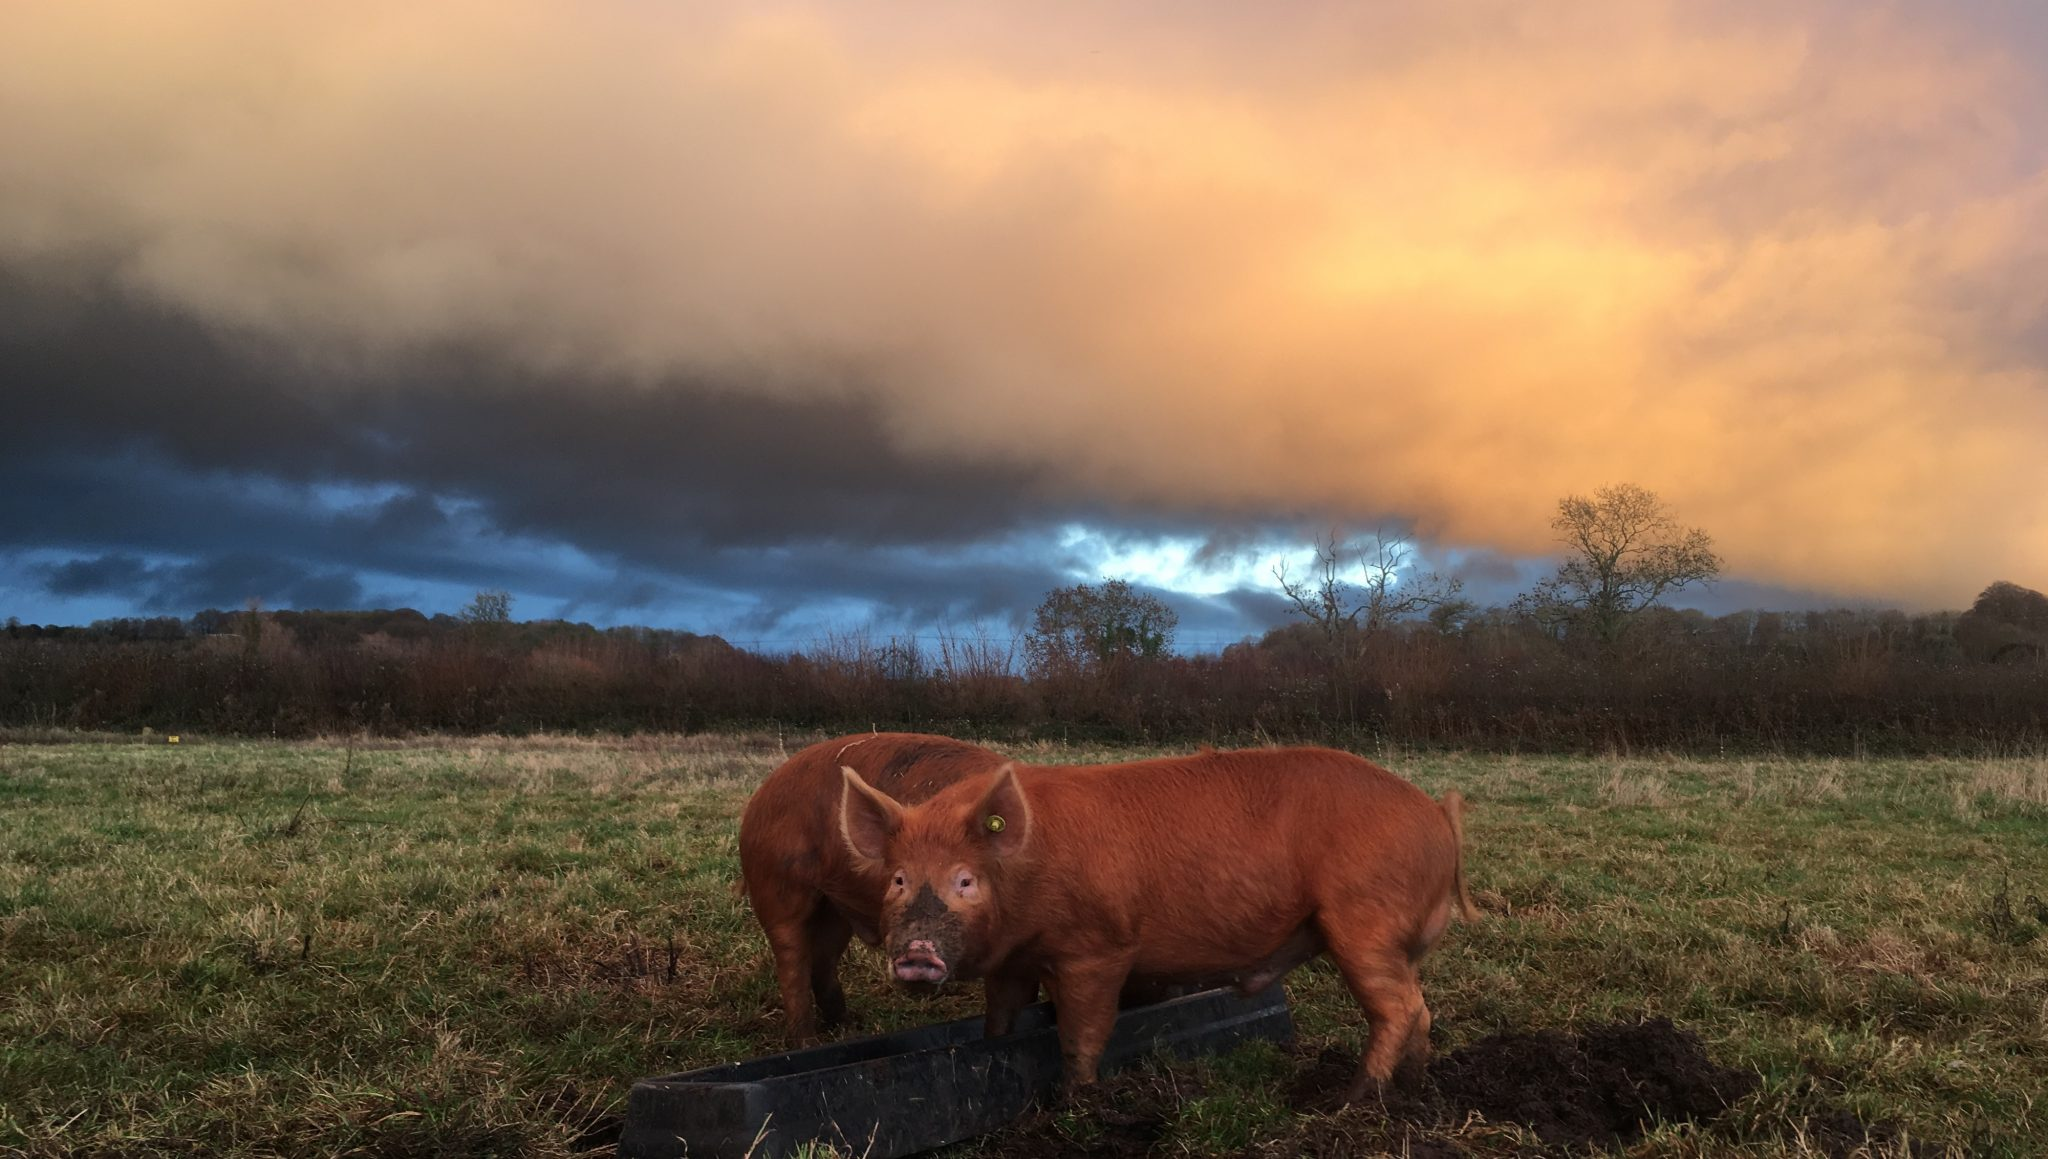 strange skies over Tamworth pigs